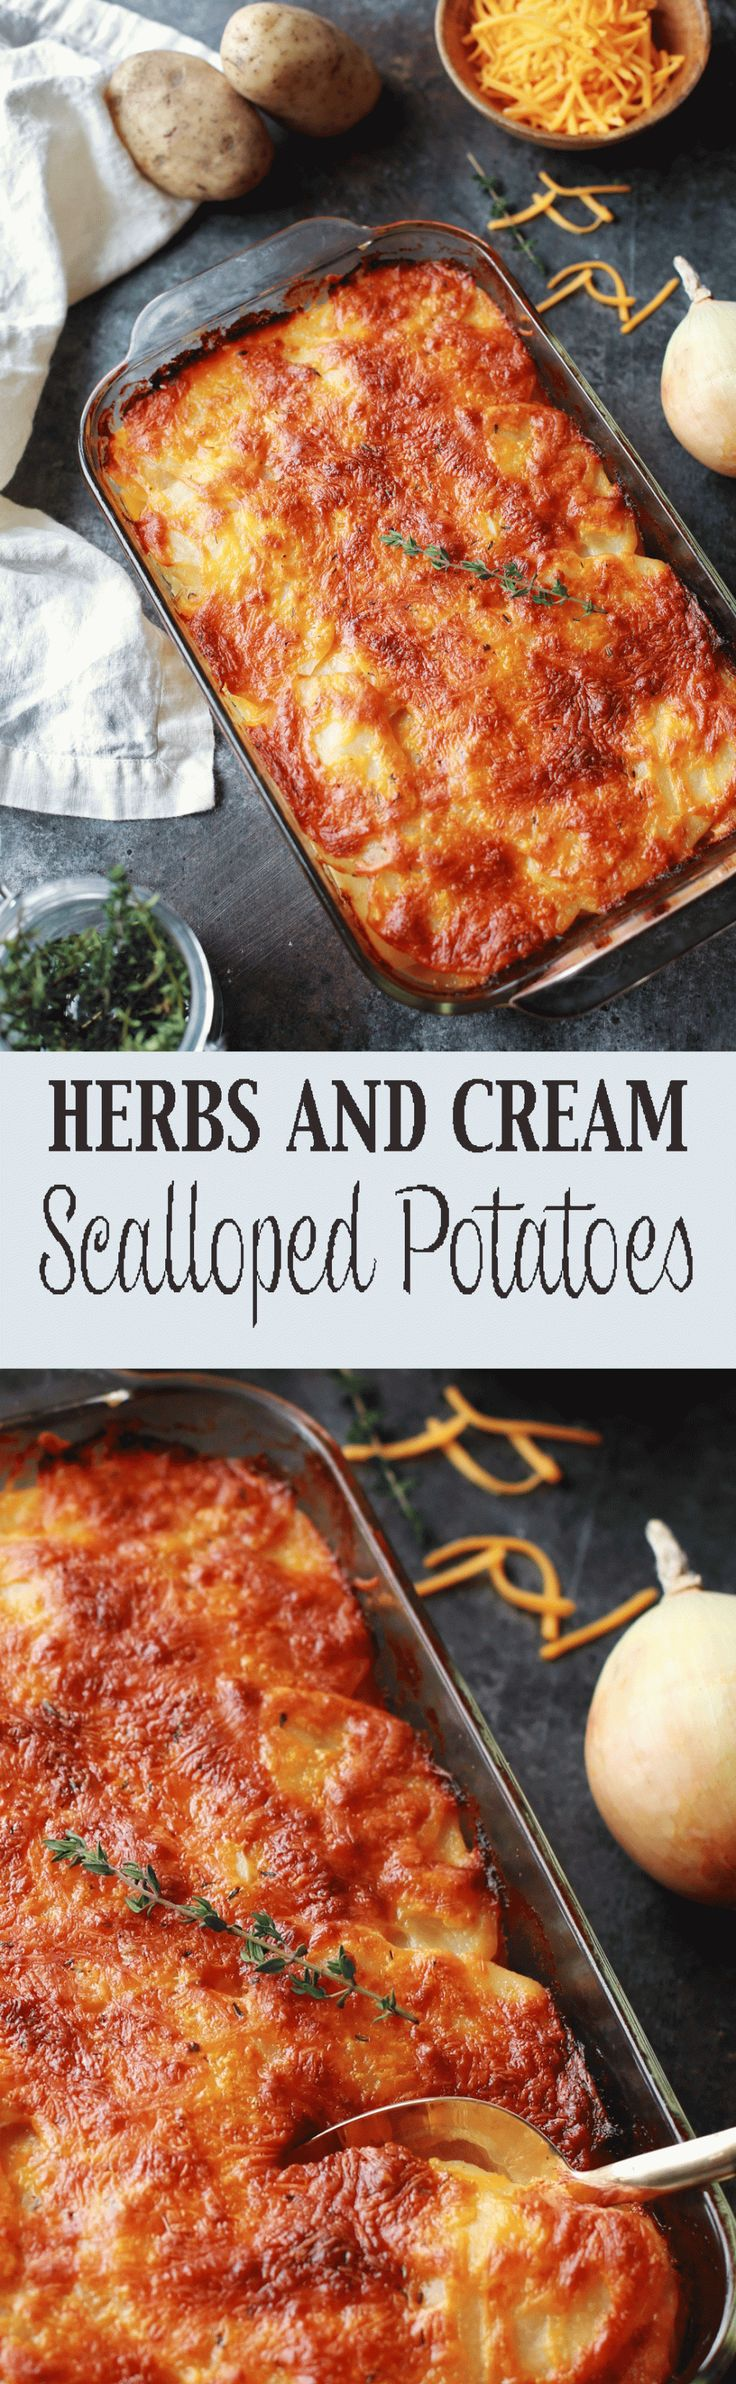 WOW! These Scalloped Potatoes were amazing. My family literally fought over who got the last helping... Make a double batch!